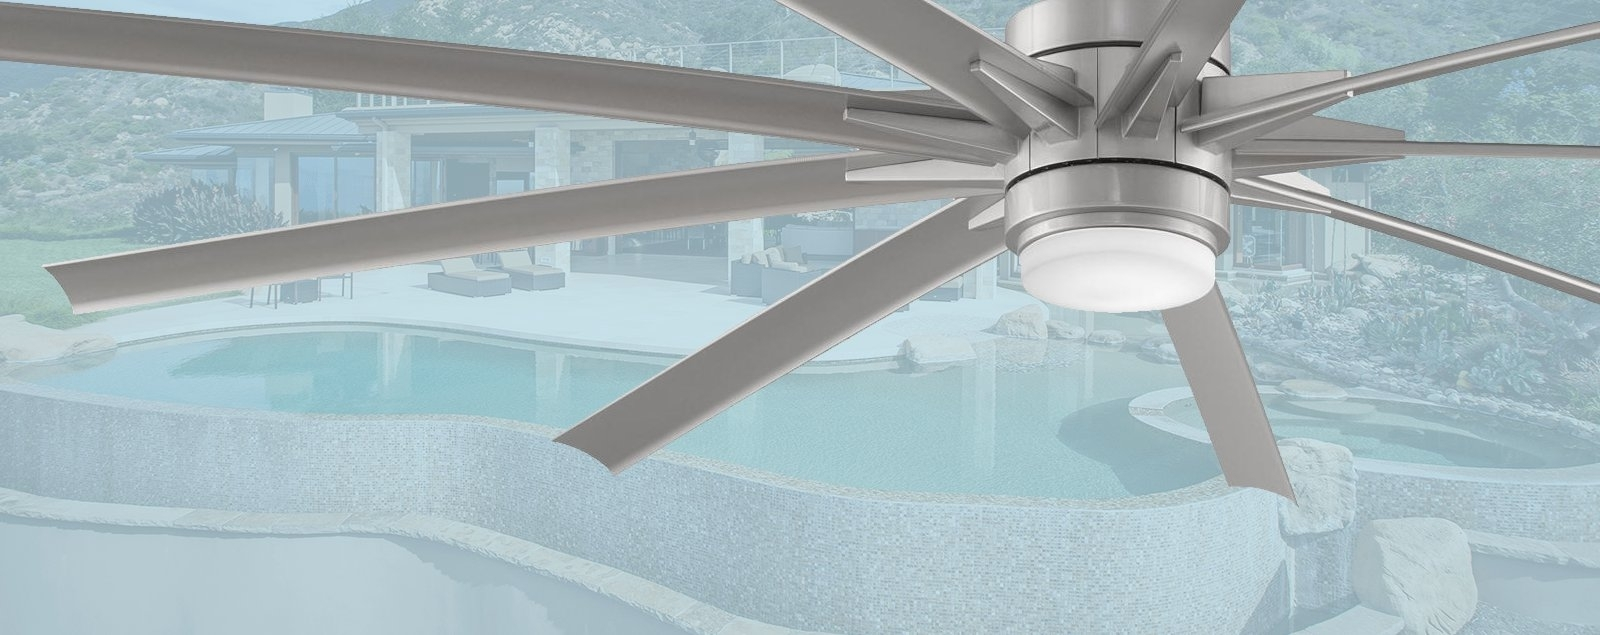 "Most Current Large Outdoor Ceiling Fans – Outdoor Fans Over 60"" In Diameter Throughout High Volume Outdoor Ceiling Fans (View 18 of 20)"